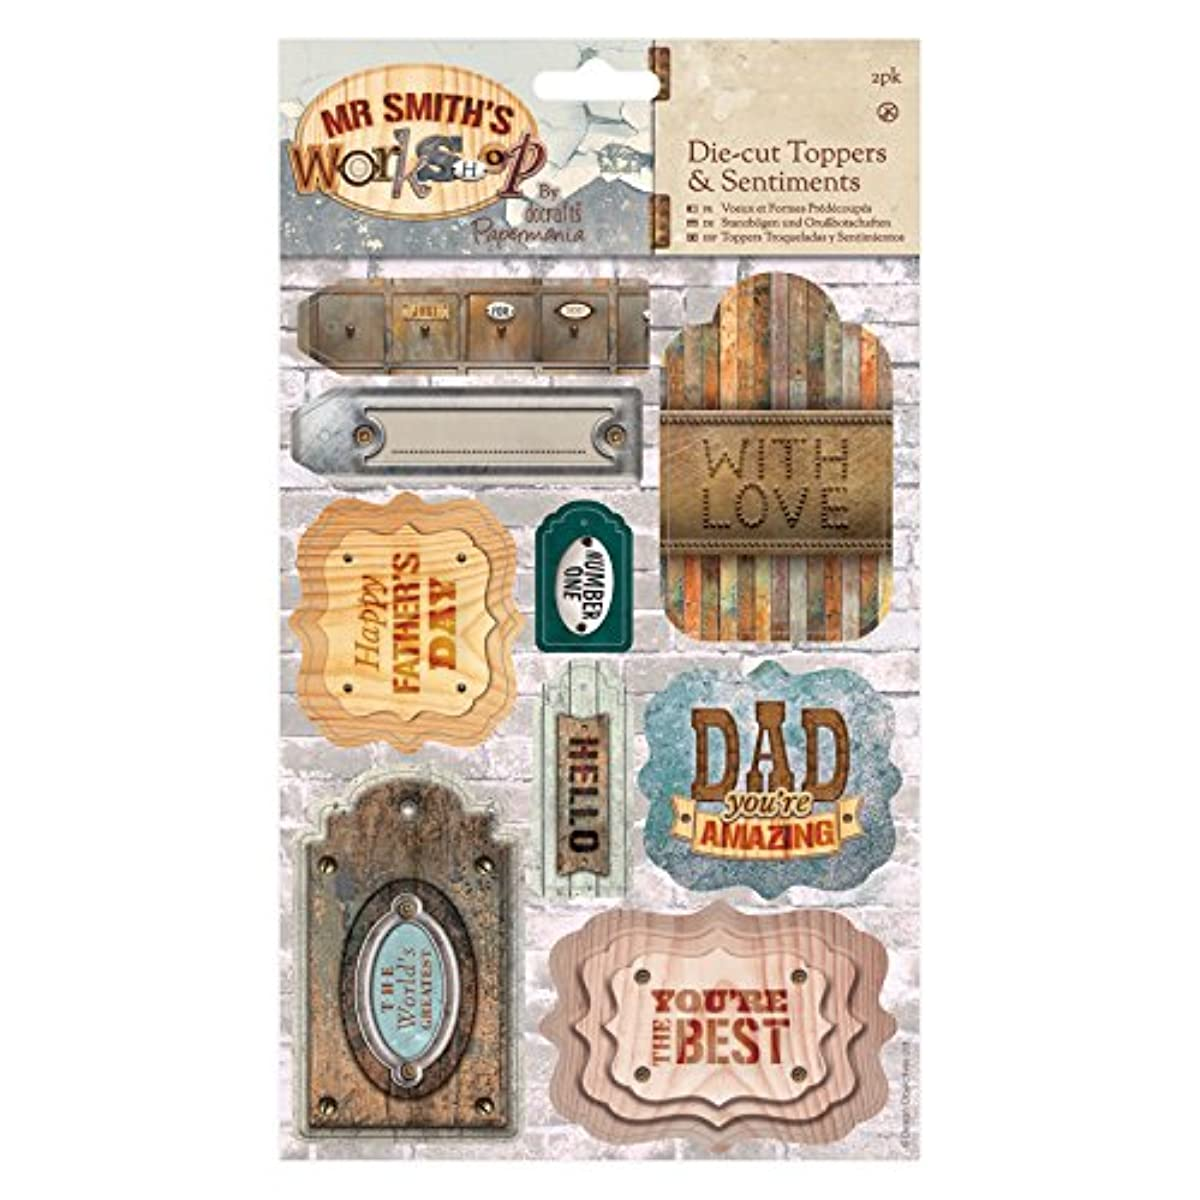 DOCrafts Papermania Mr. Smith's Workshop A5 Die-Cuts 2/Sheets-Toppers & Sentiments